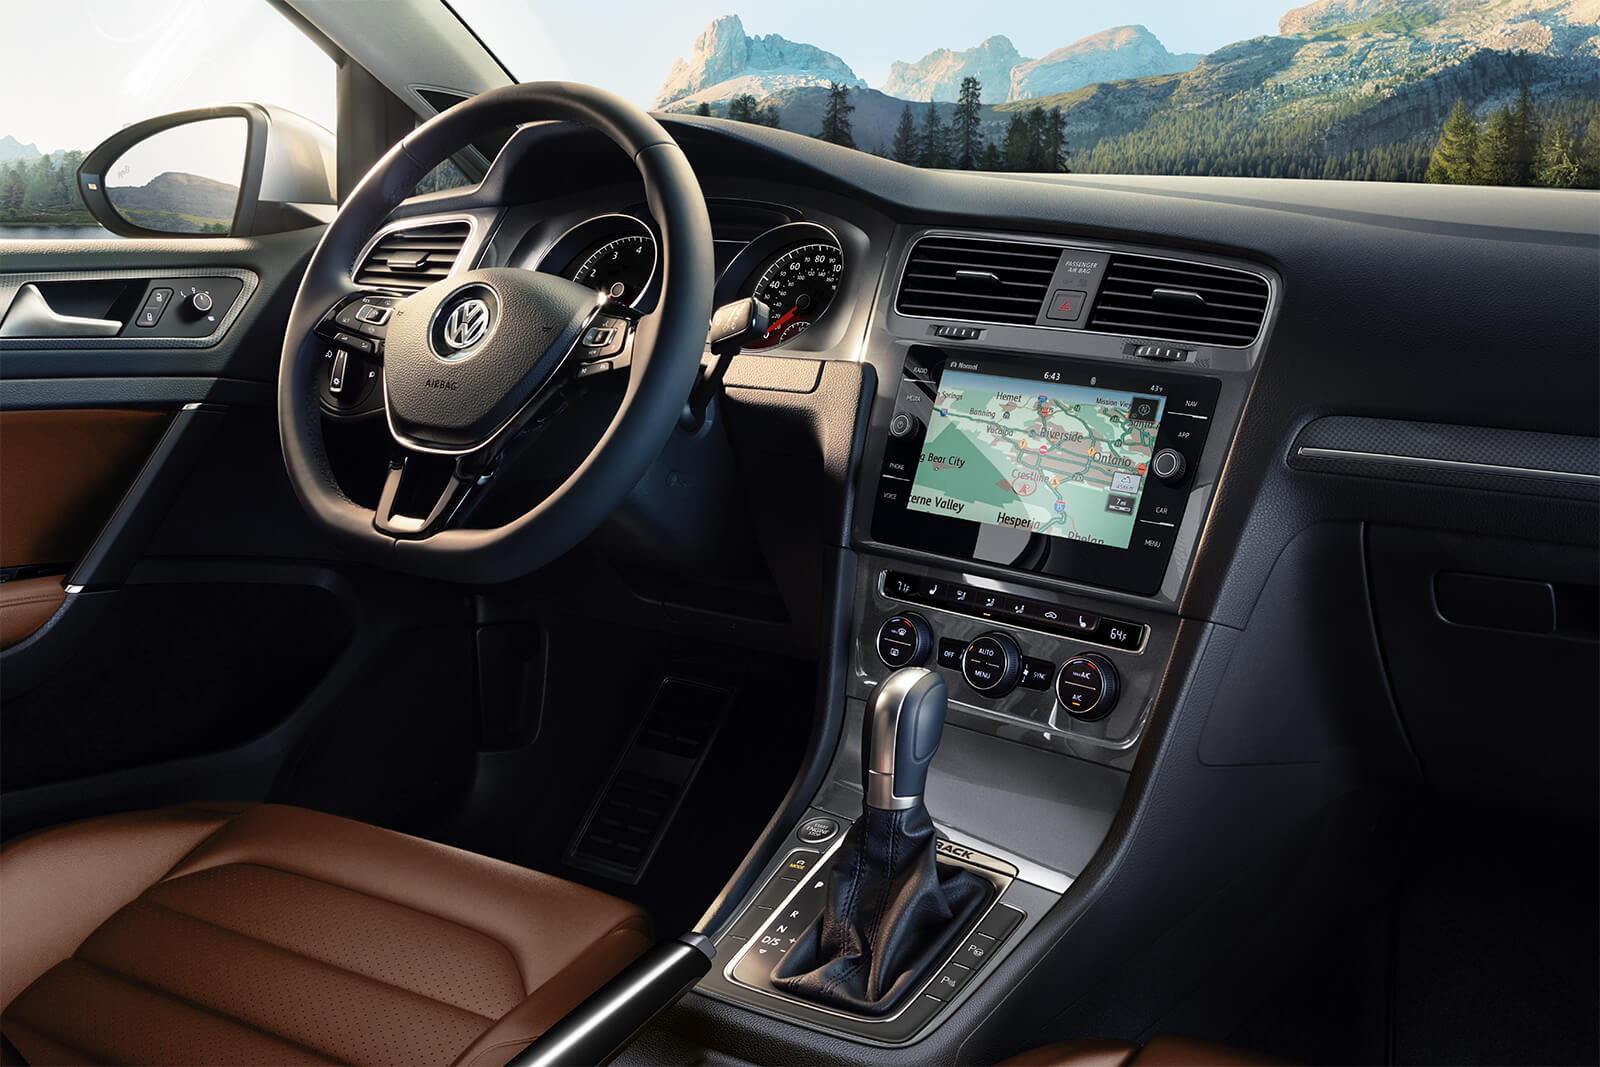 2019 Volkswagen Golf Alltrack SEL Front Interior Dashboard and Display